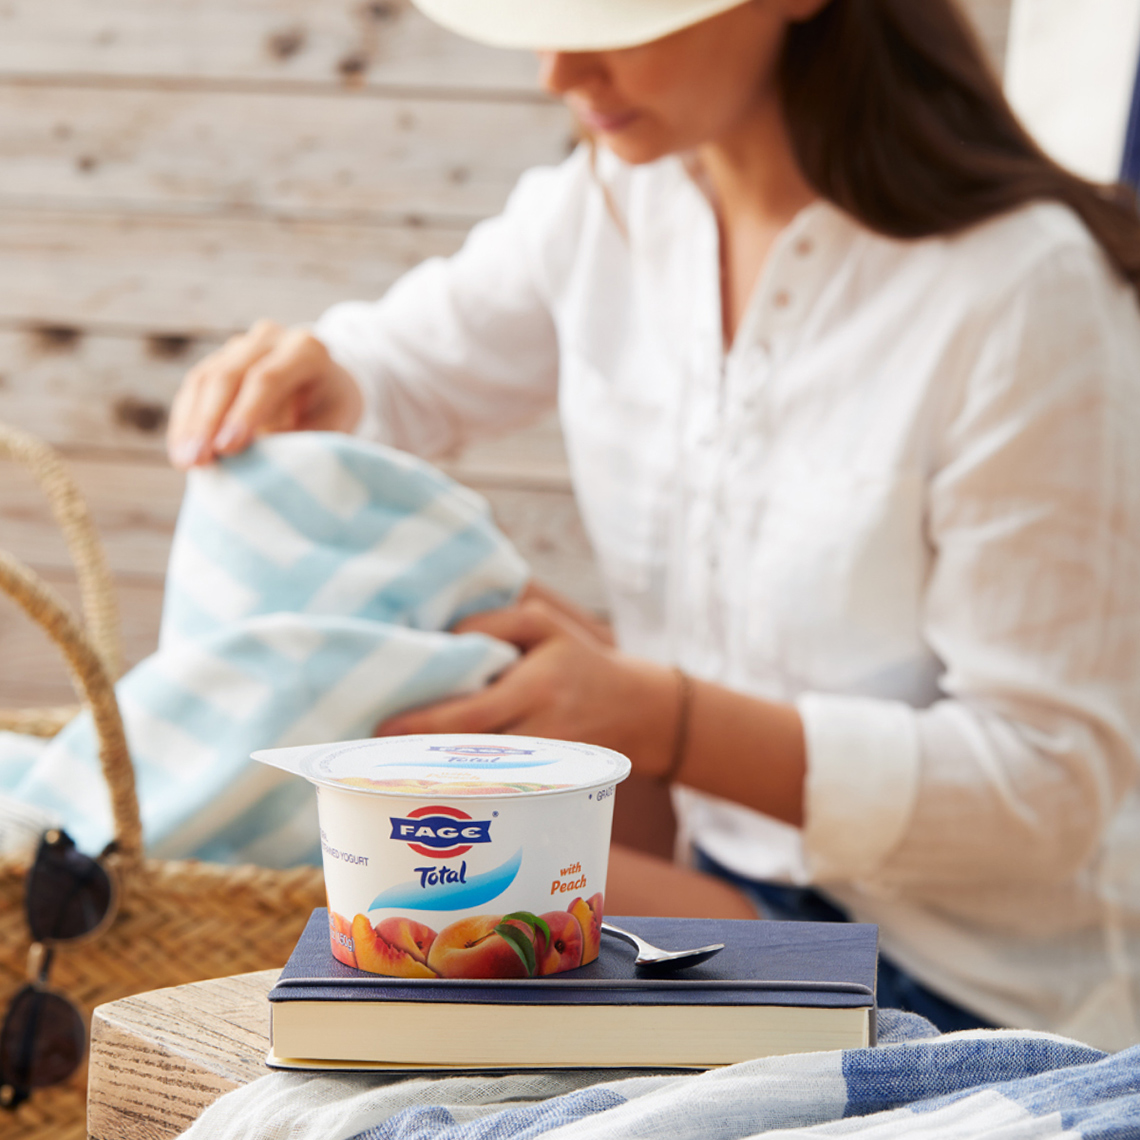 Fage Yogurt Beach Tote